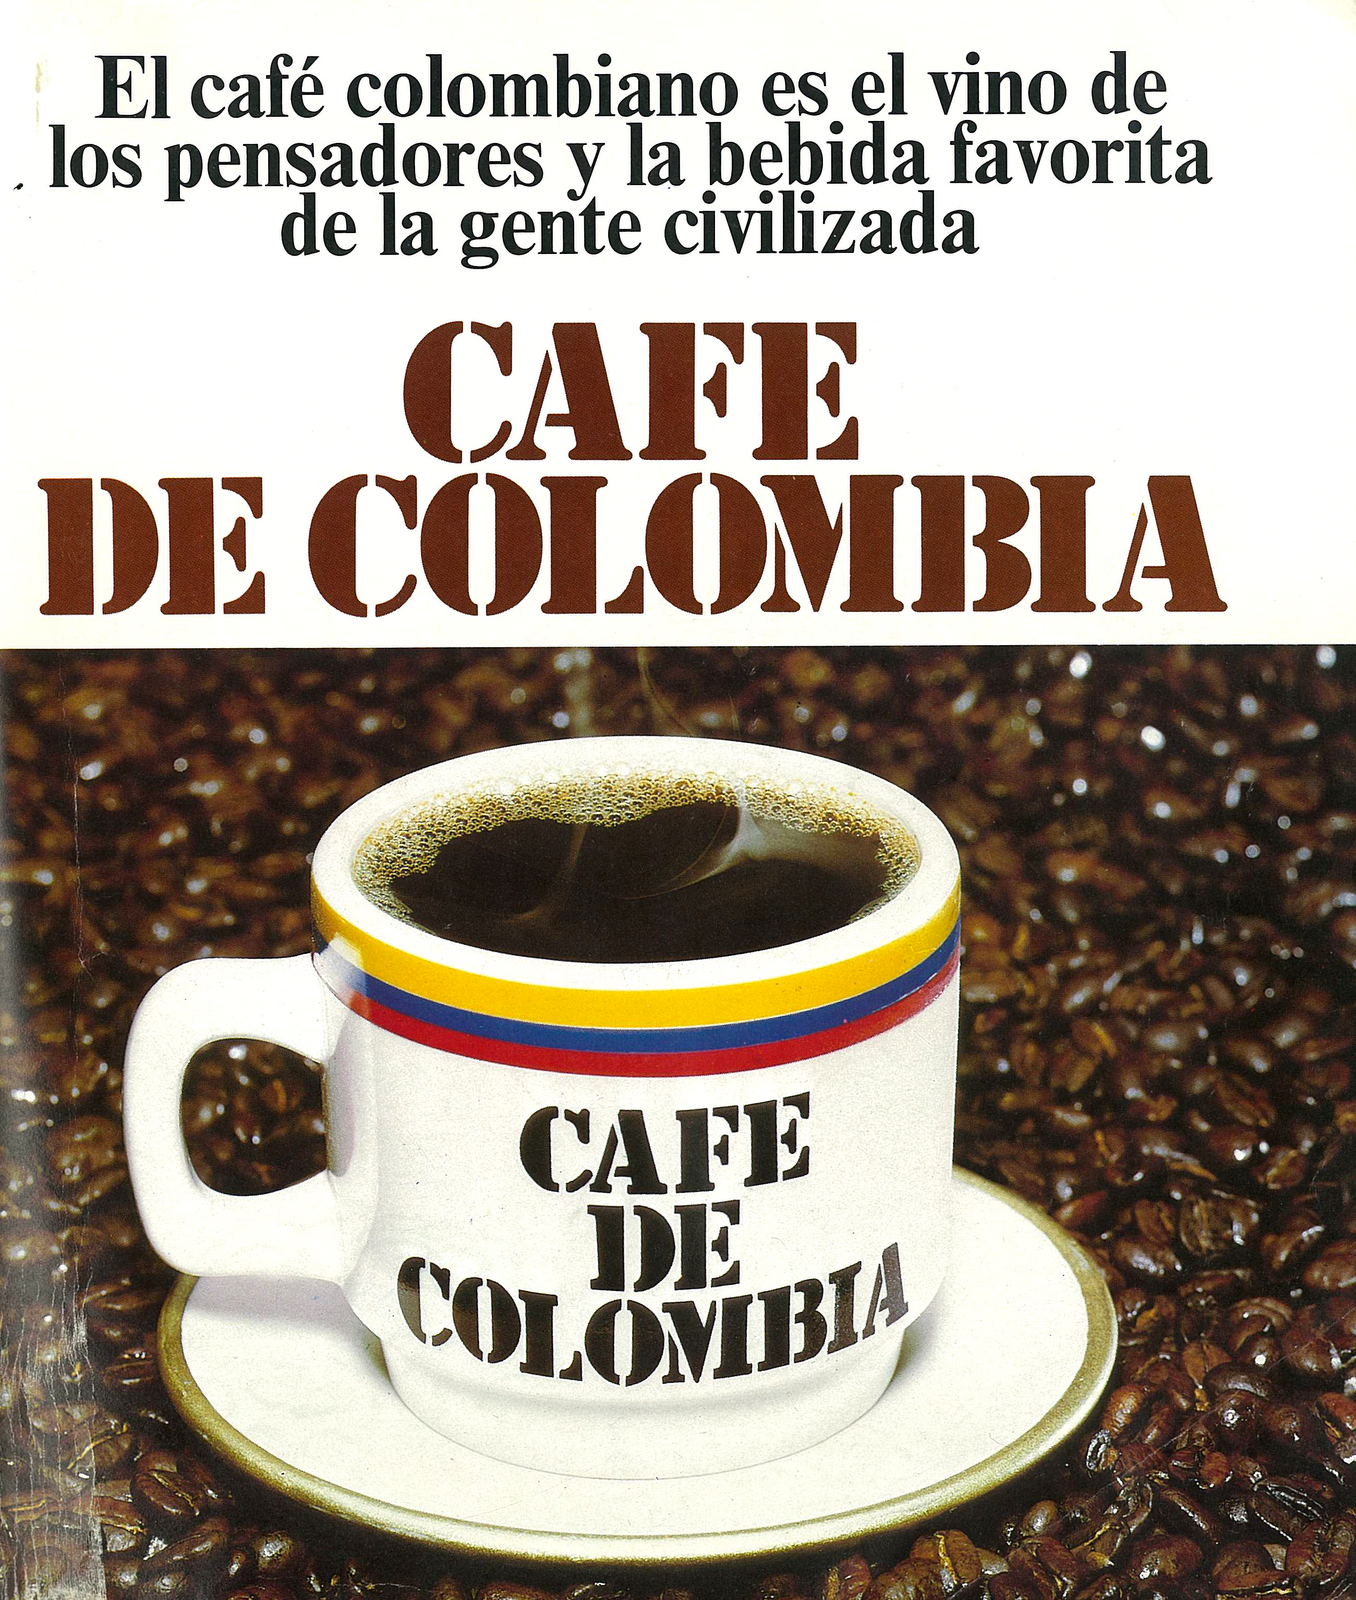 """Translation: """"Colombian coffee, the wine of thinkers, the favorite beverage among civilized people."""" The cup in shown in this picture is a larger serving by Colombian standards."""